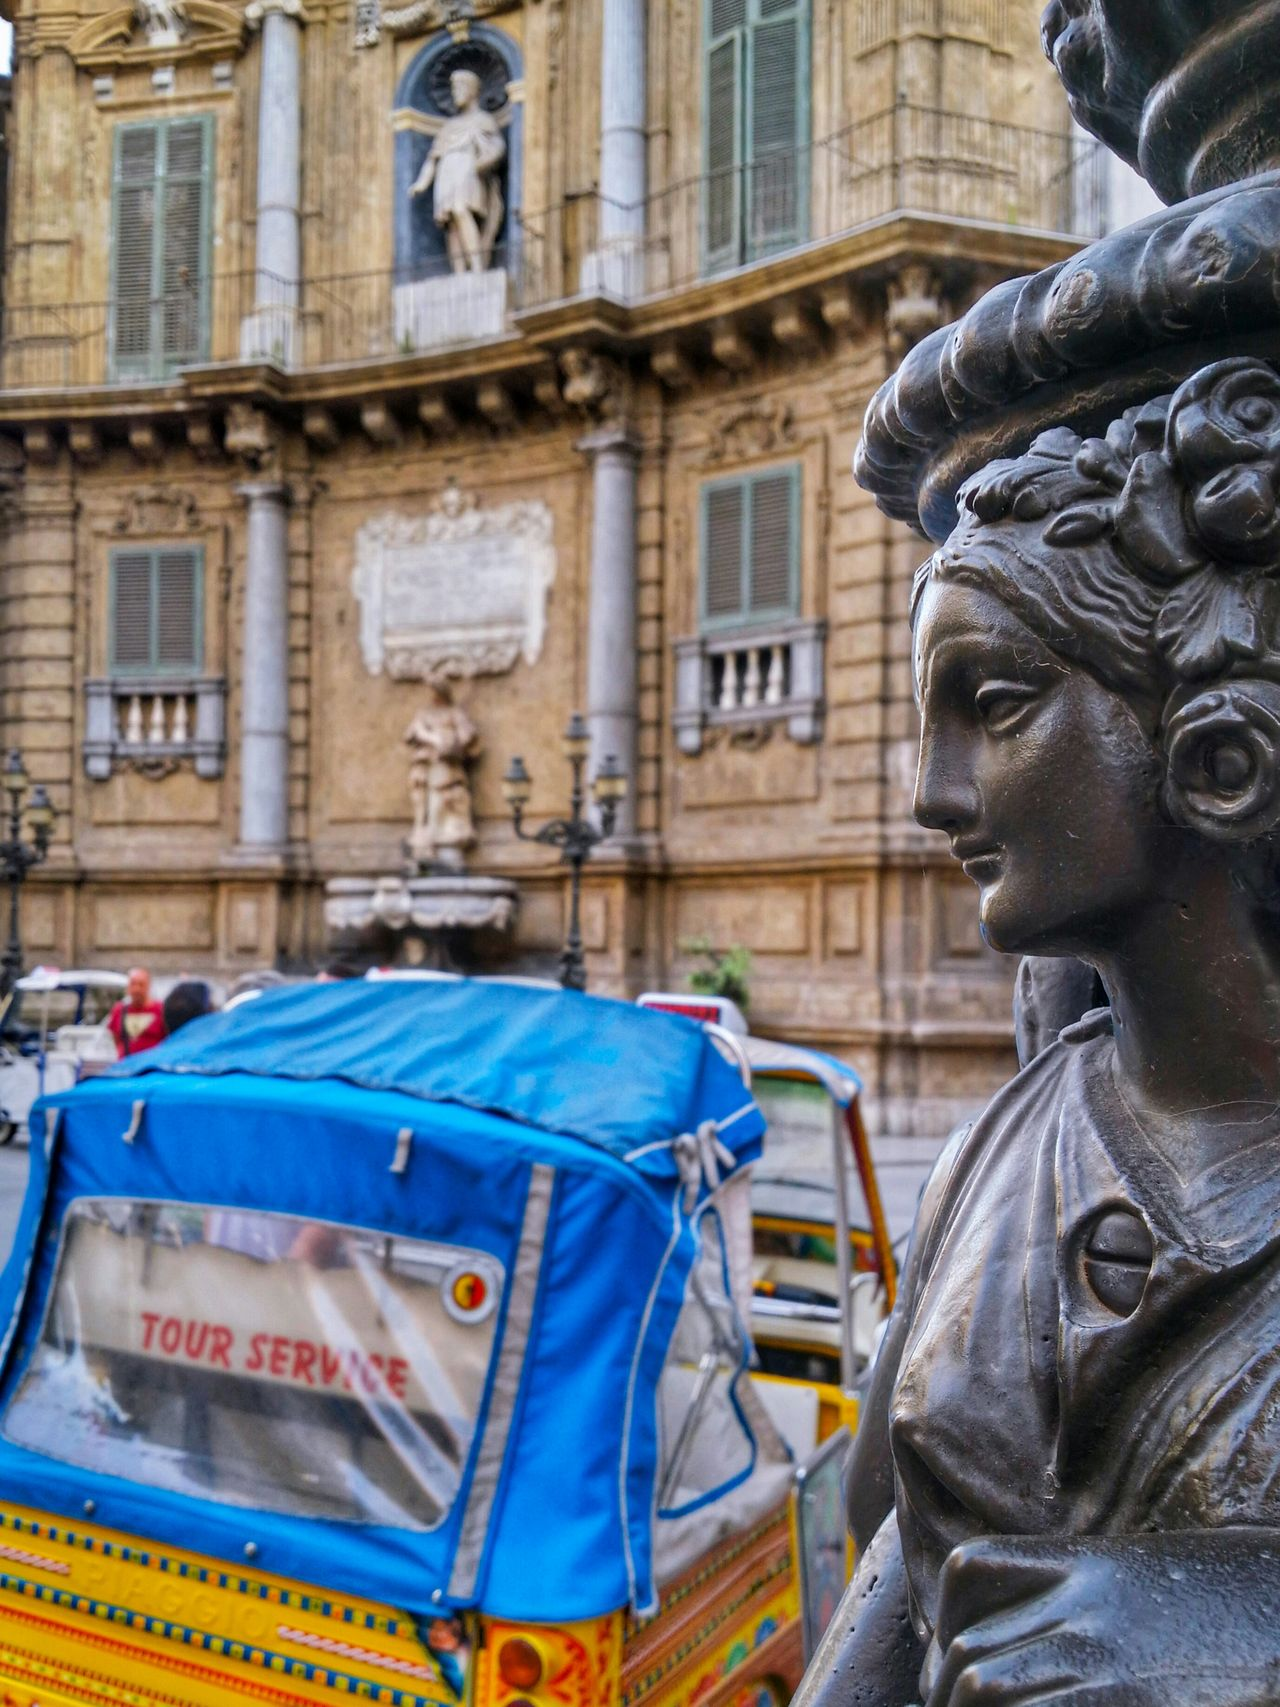 Quattro Canti Four Corners Palermo Sicily Italy Travel Photography Travel Voyage Traveling Mobile Photography Fine Art Architecture Selective Focus Monumental Buildings Street Lights Minicabs Mobile Editing Giallo A Palermo Tutti I Particolari In Cronaca Palermo Mellow Yellow